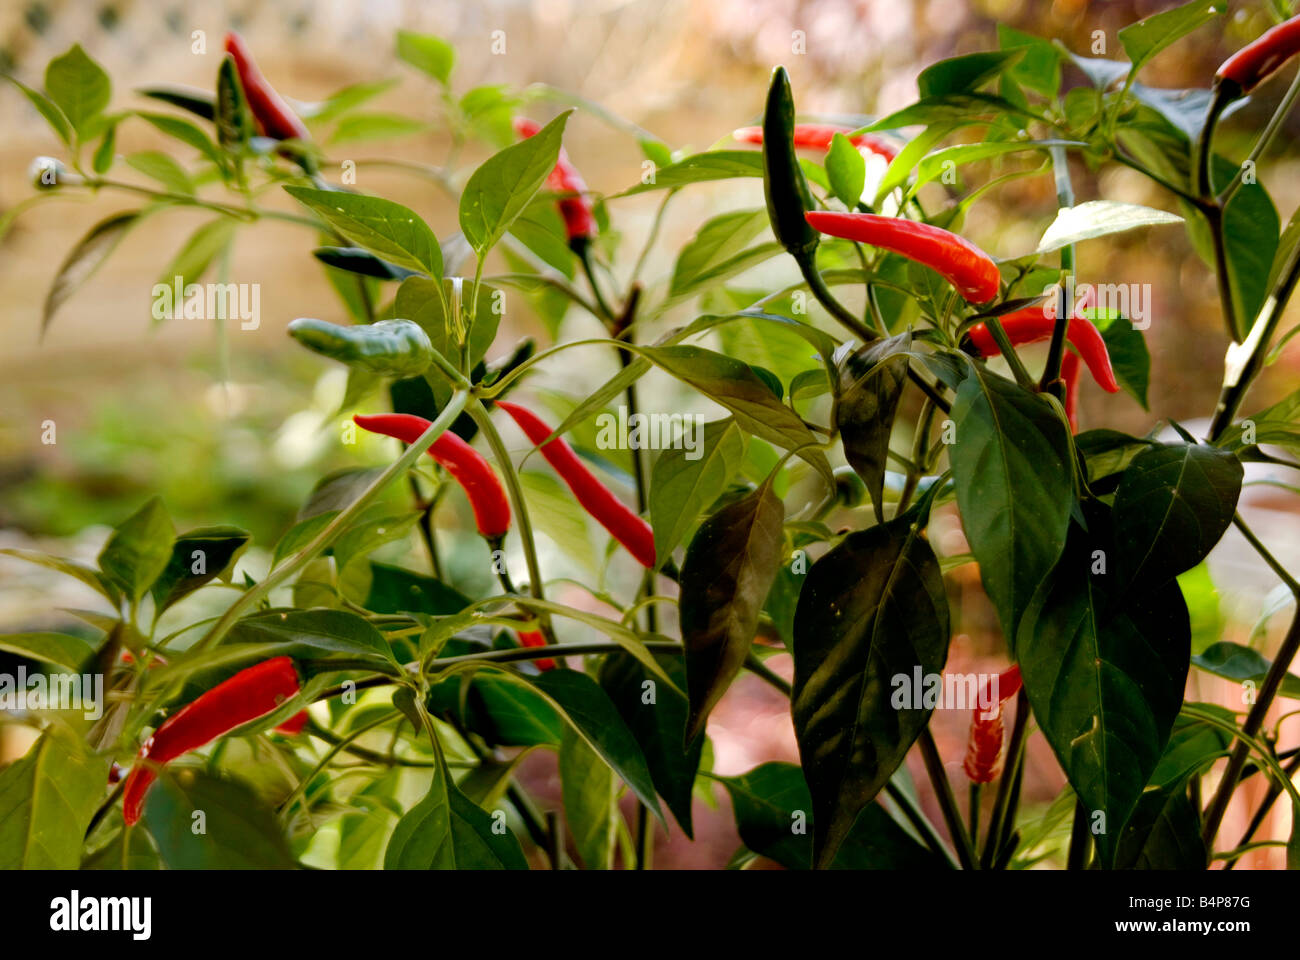 Red Chilli Peppers growing from a chilli plant - Stock Image